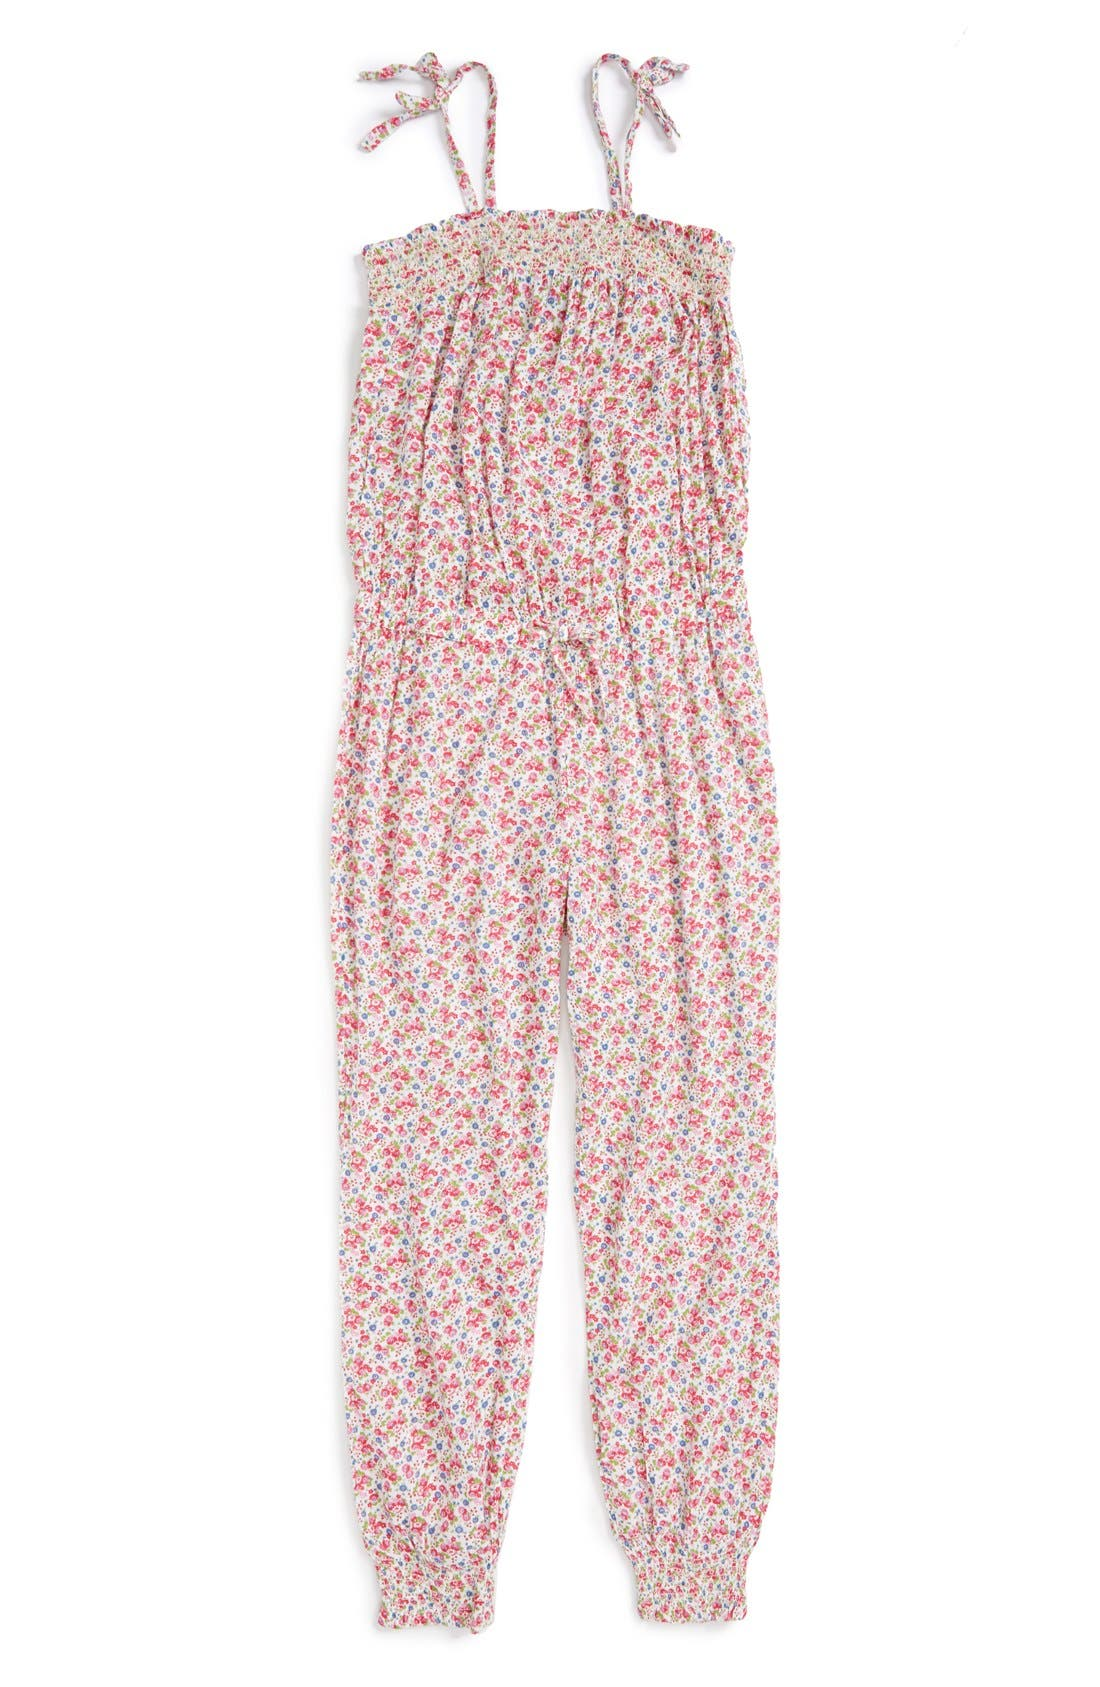 RALPH LAUREN Floral Print Romper, Main, color, 101